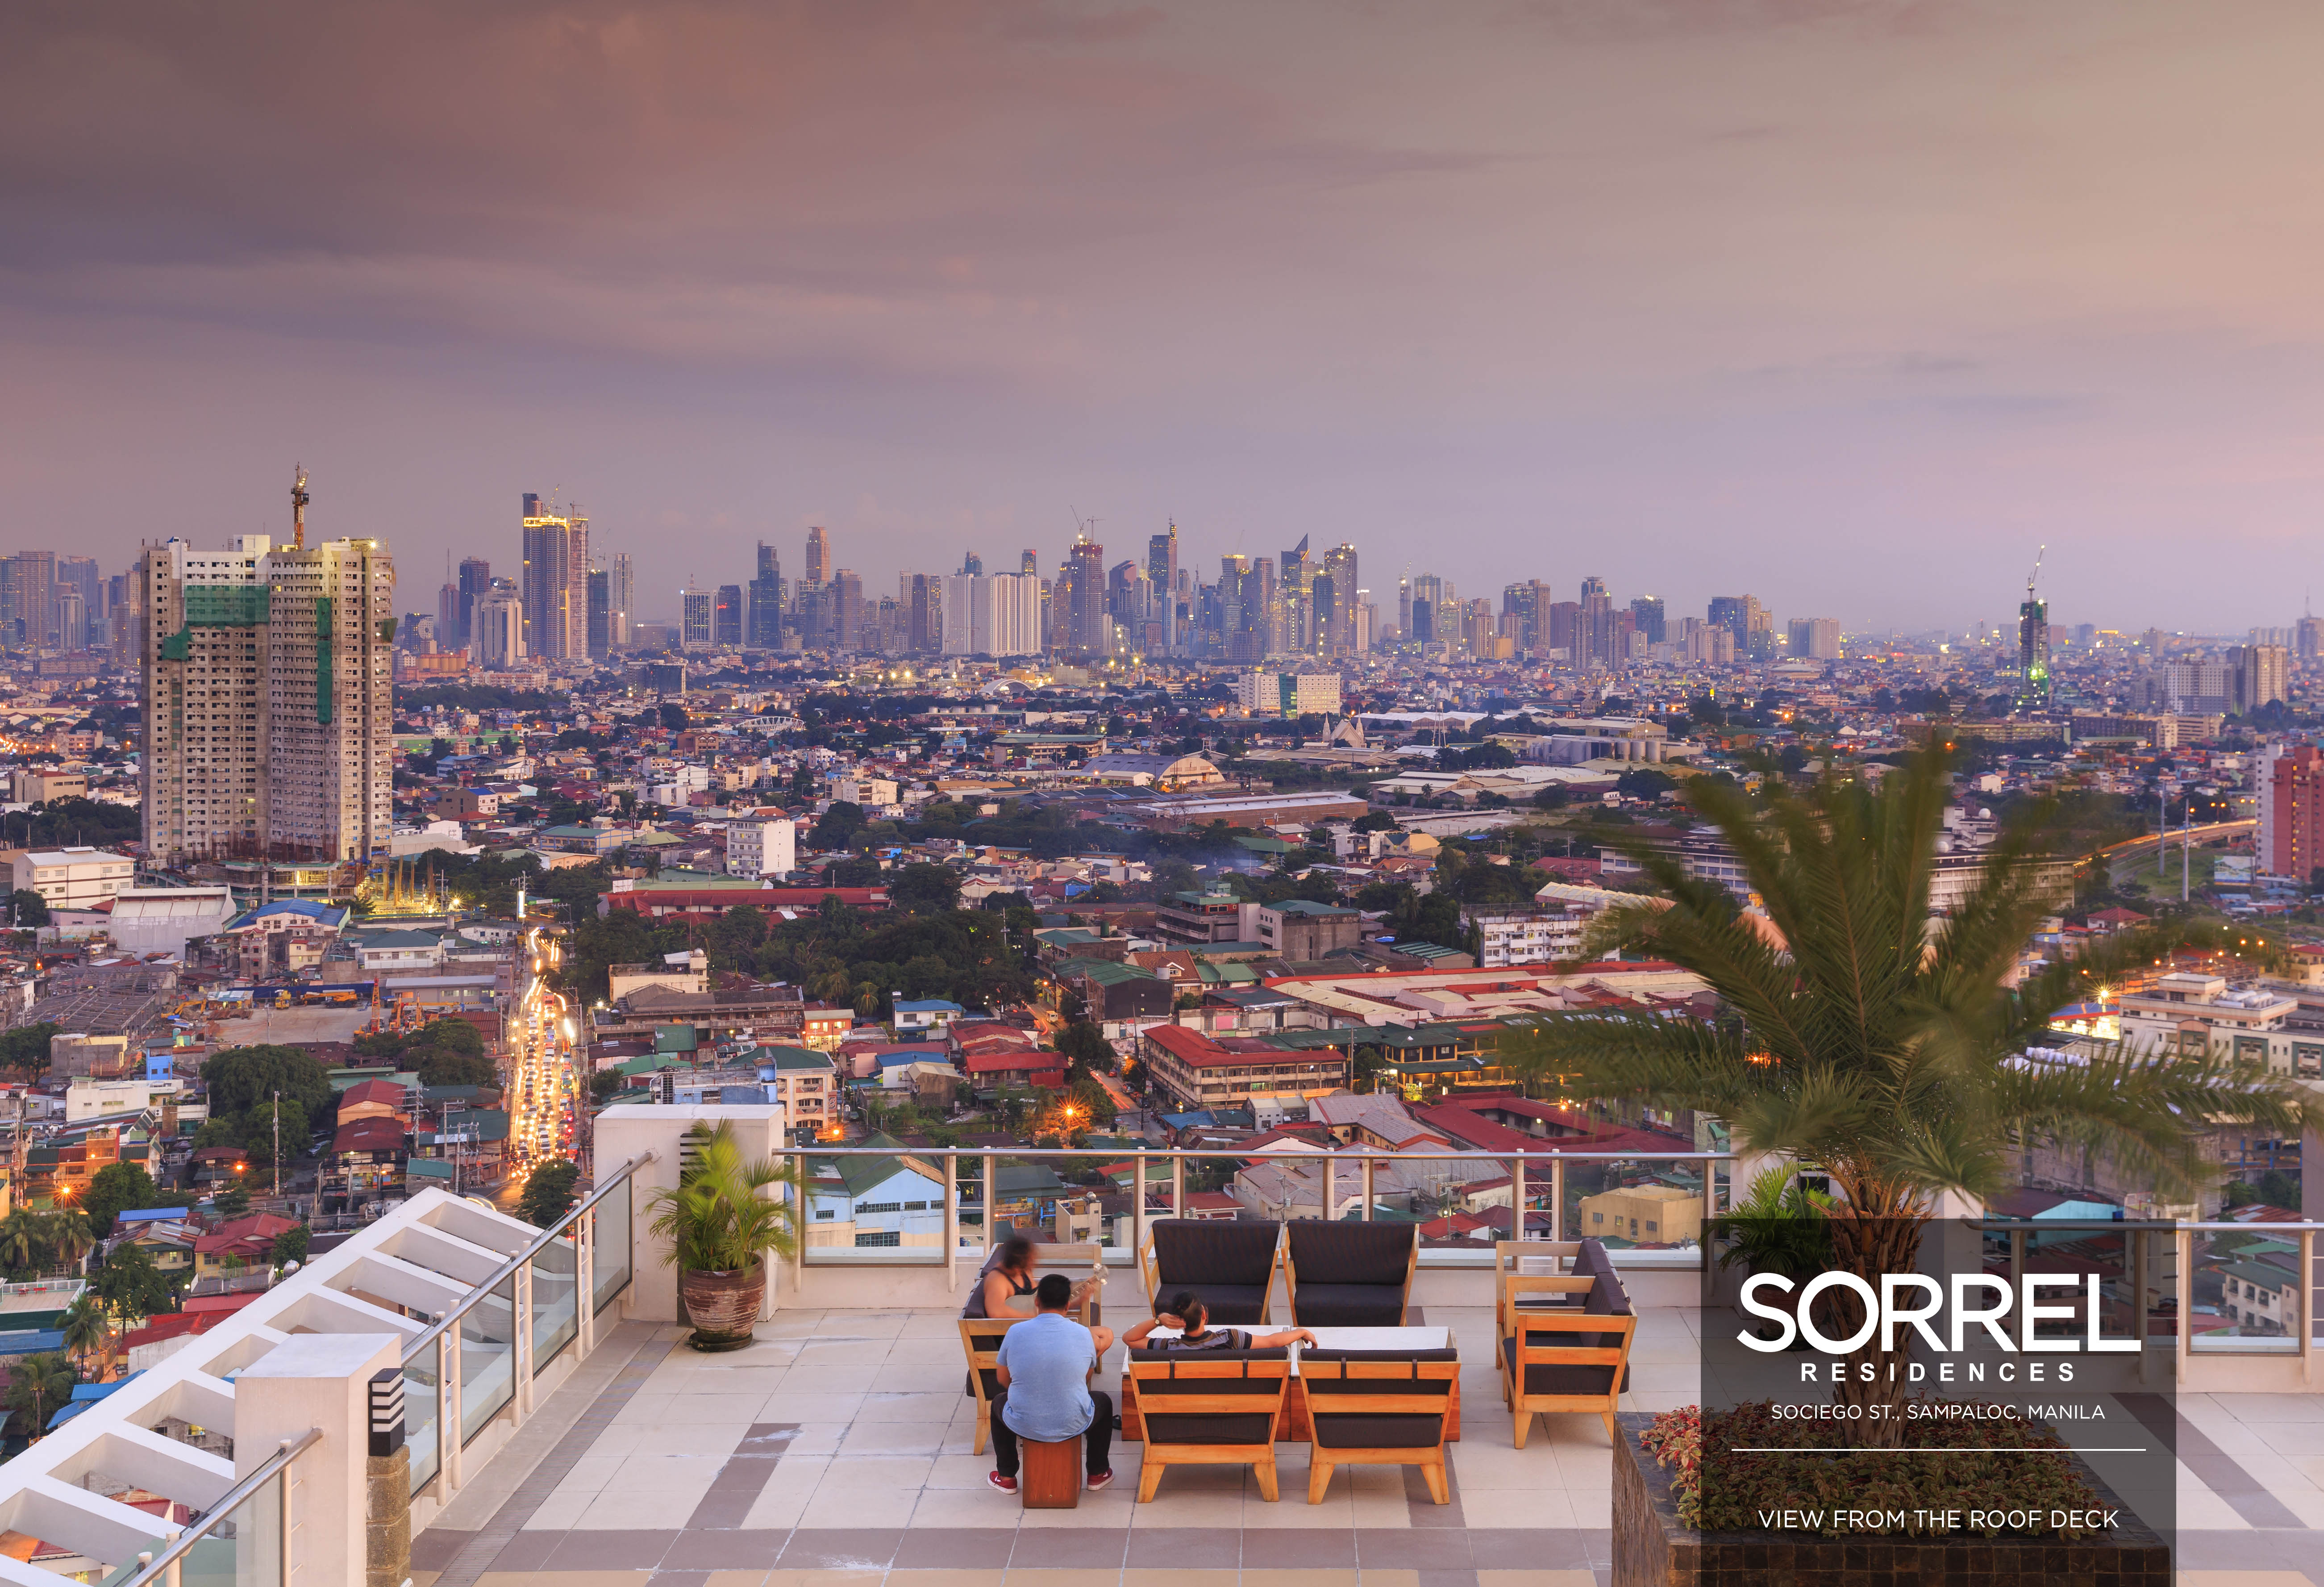 sorrel-residences-roof-top-view